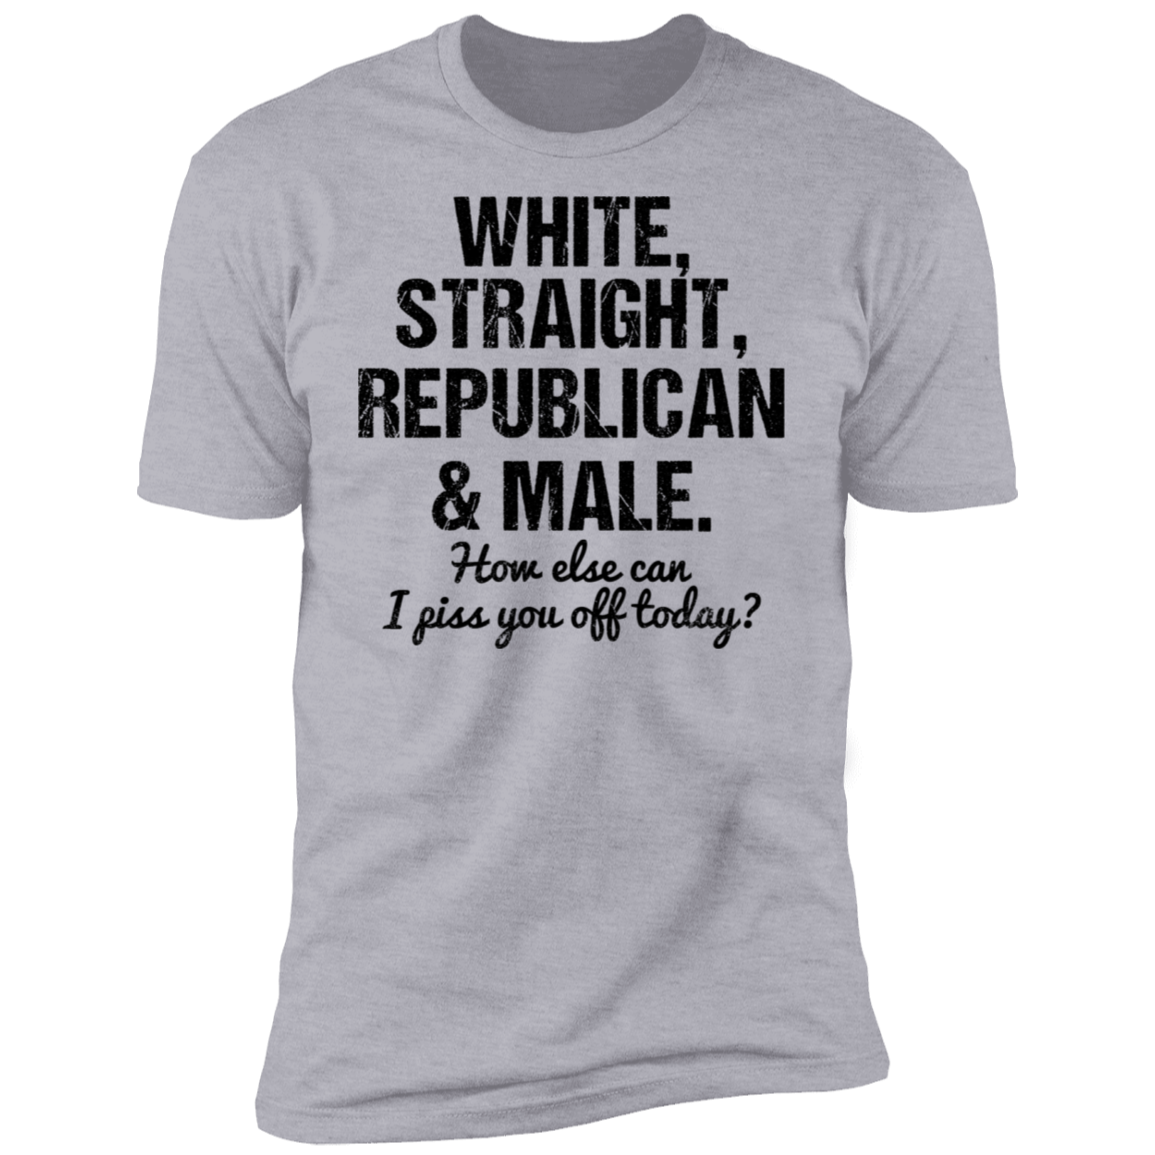 White Straight Republican and Male Premium Short Sleeve T-Shirt